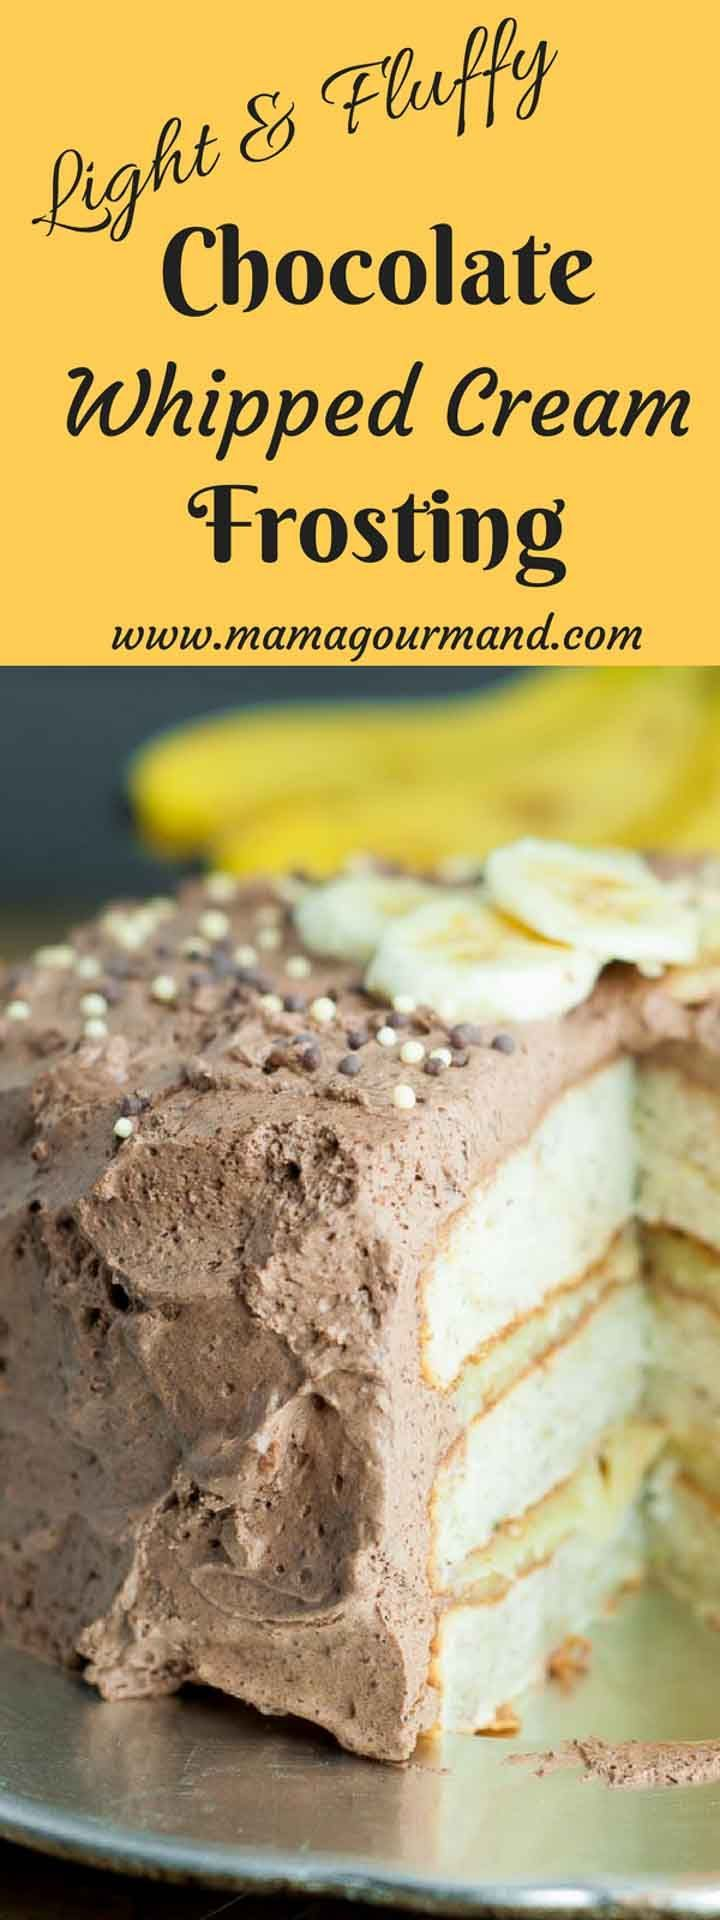 Chocolate whipped cream frosting is a light, fluffy frosting with the perfect amount of sweetness that pairs deliciously with any cake. http://www.mamagourmand.com